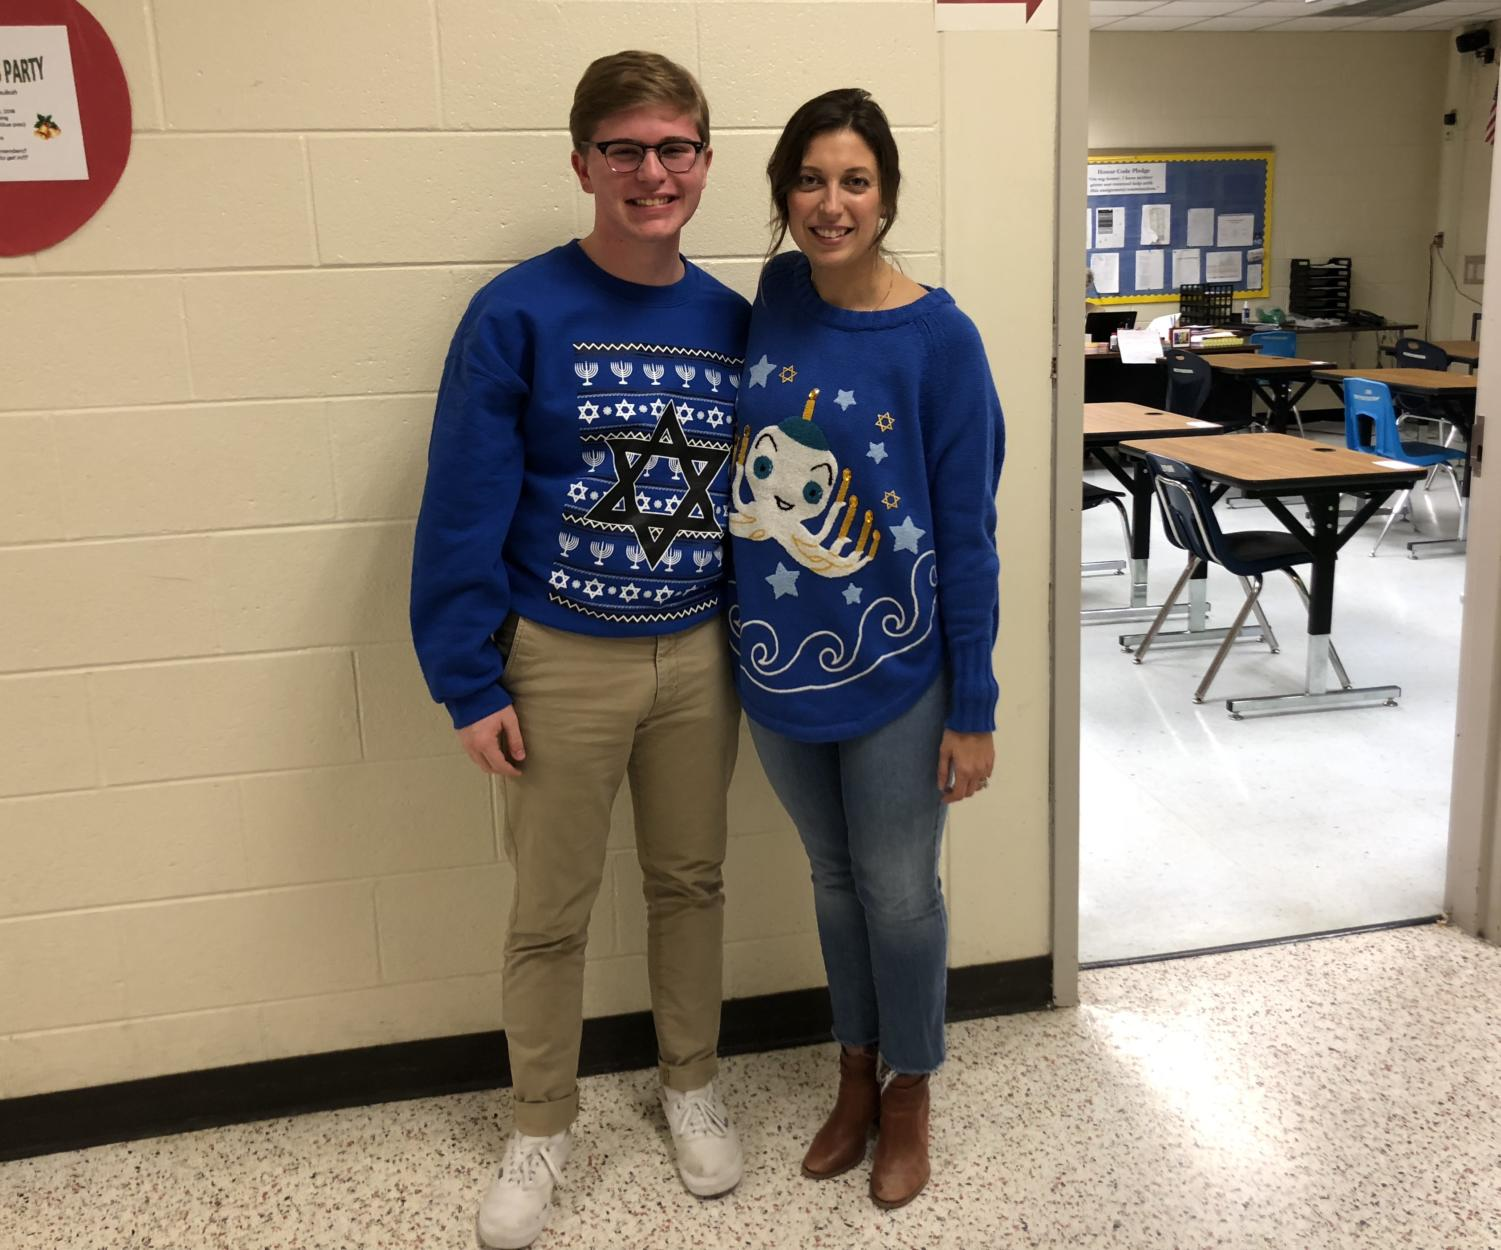 Brent Novey and Mrs. Aiello show off their festive  Hanukkah sweaters.